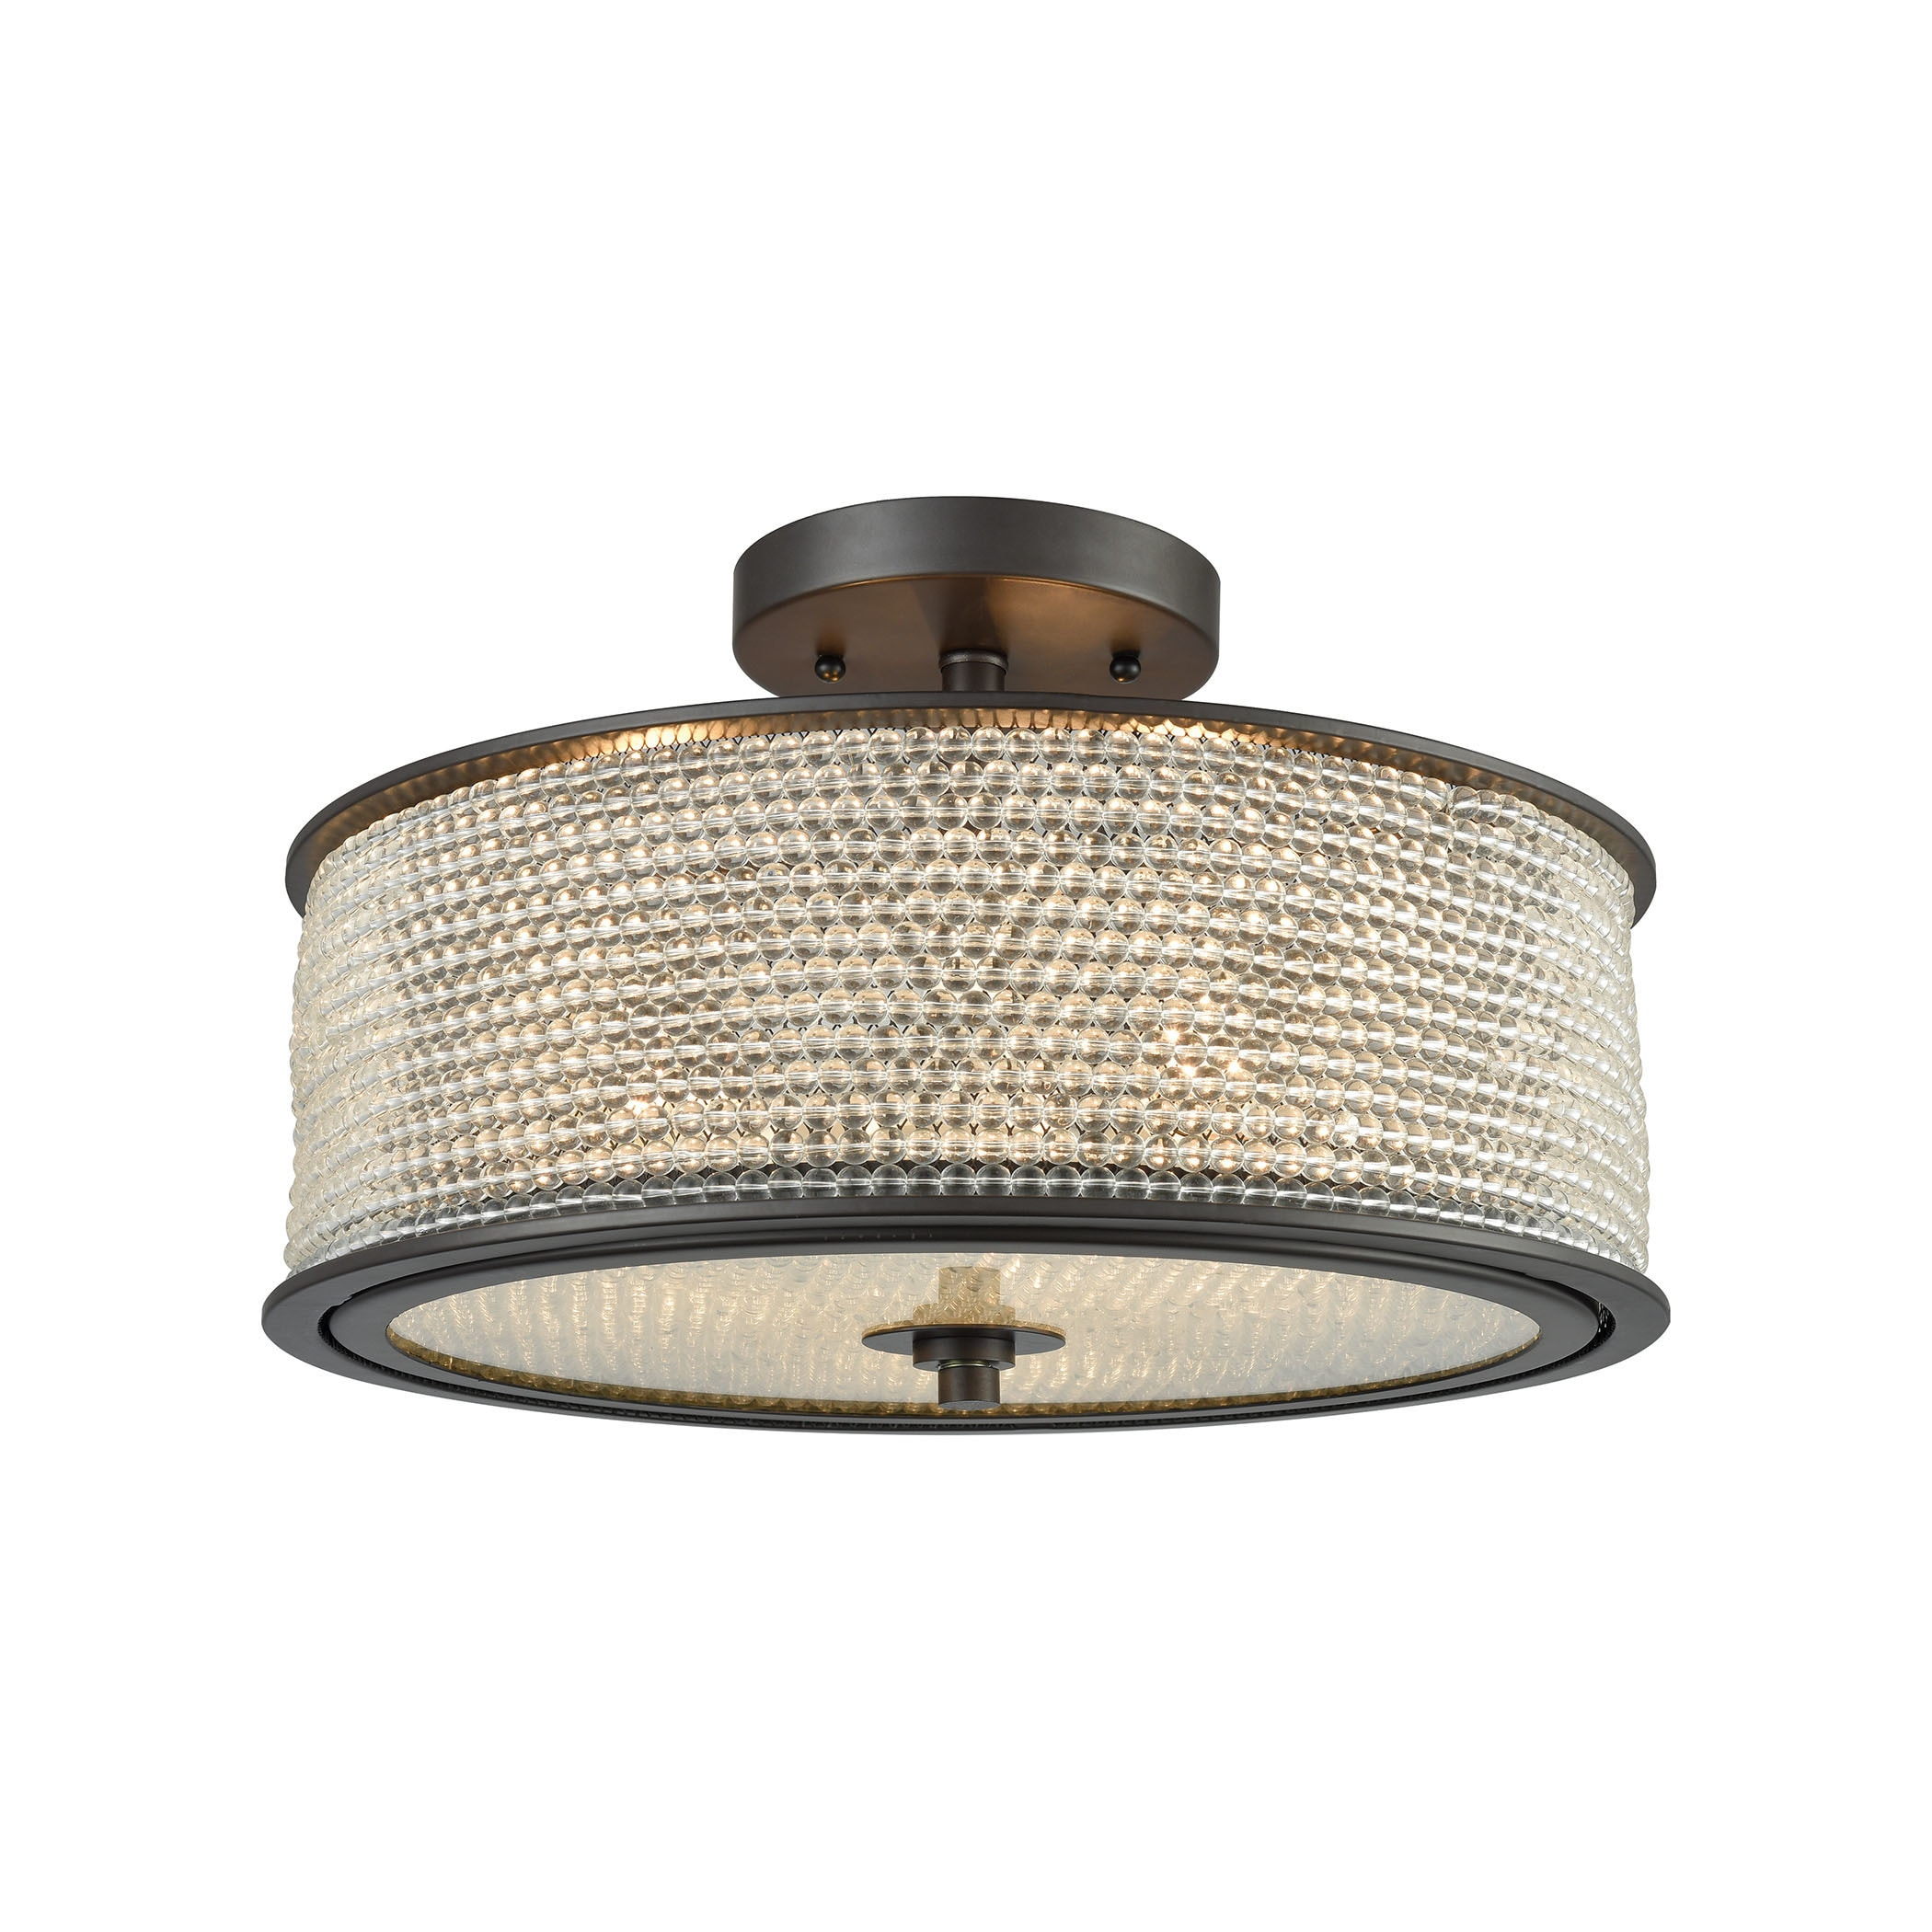 Glass Beads 3 Light Oil Rubbed Bronze Semi Flush Mount With Clear Glass Balls Overstock 16849763